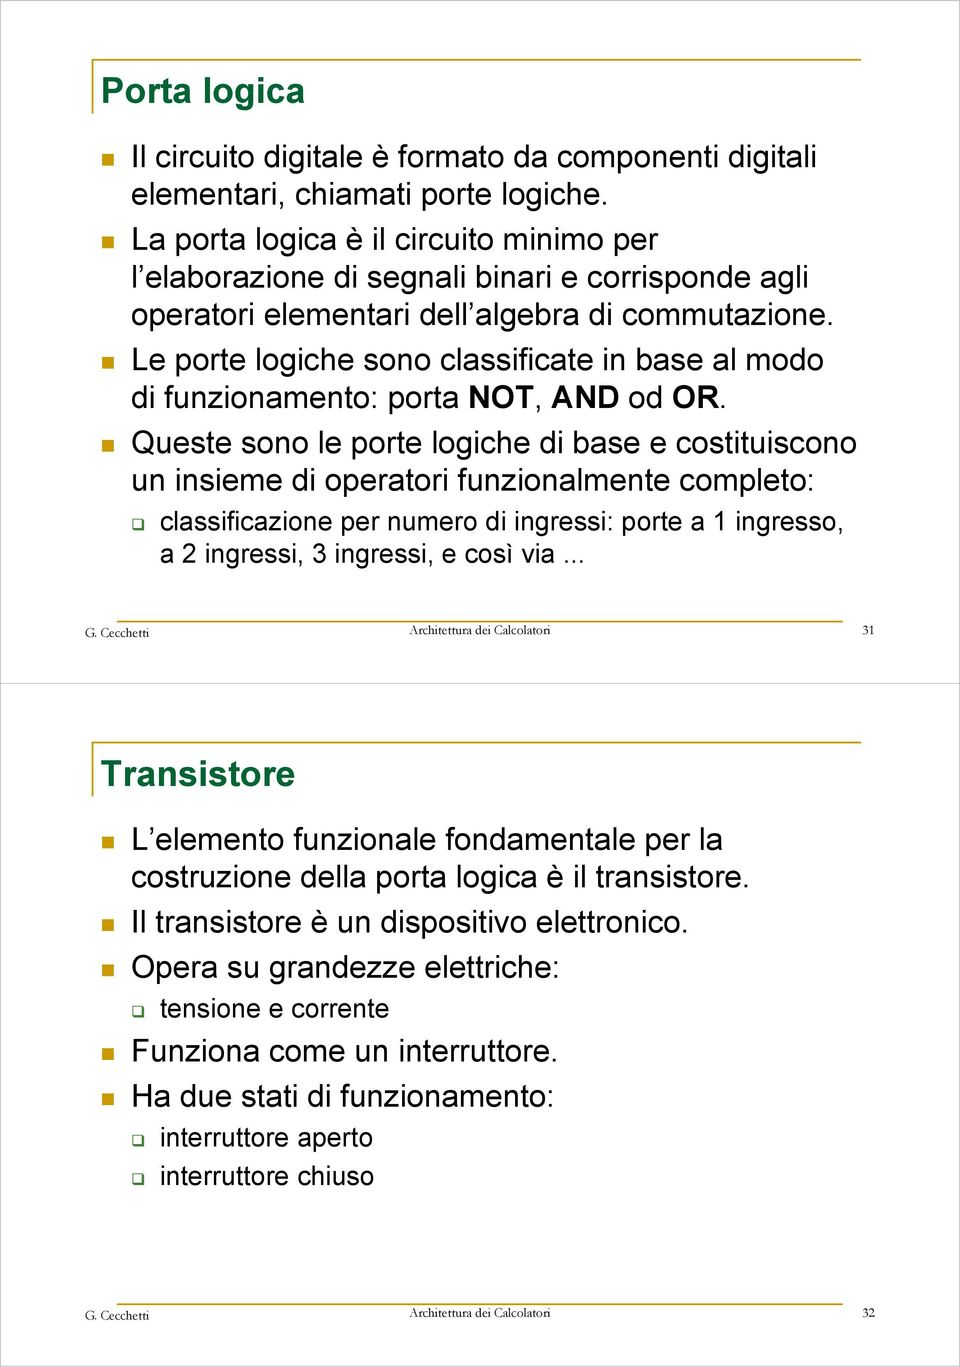 Le porte logiche sono classificate in base al modo di funzionamento: porta NOT, AND od OR.